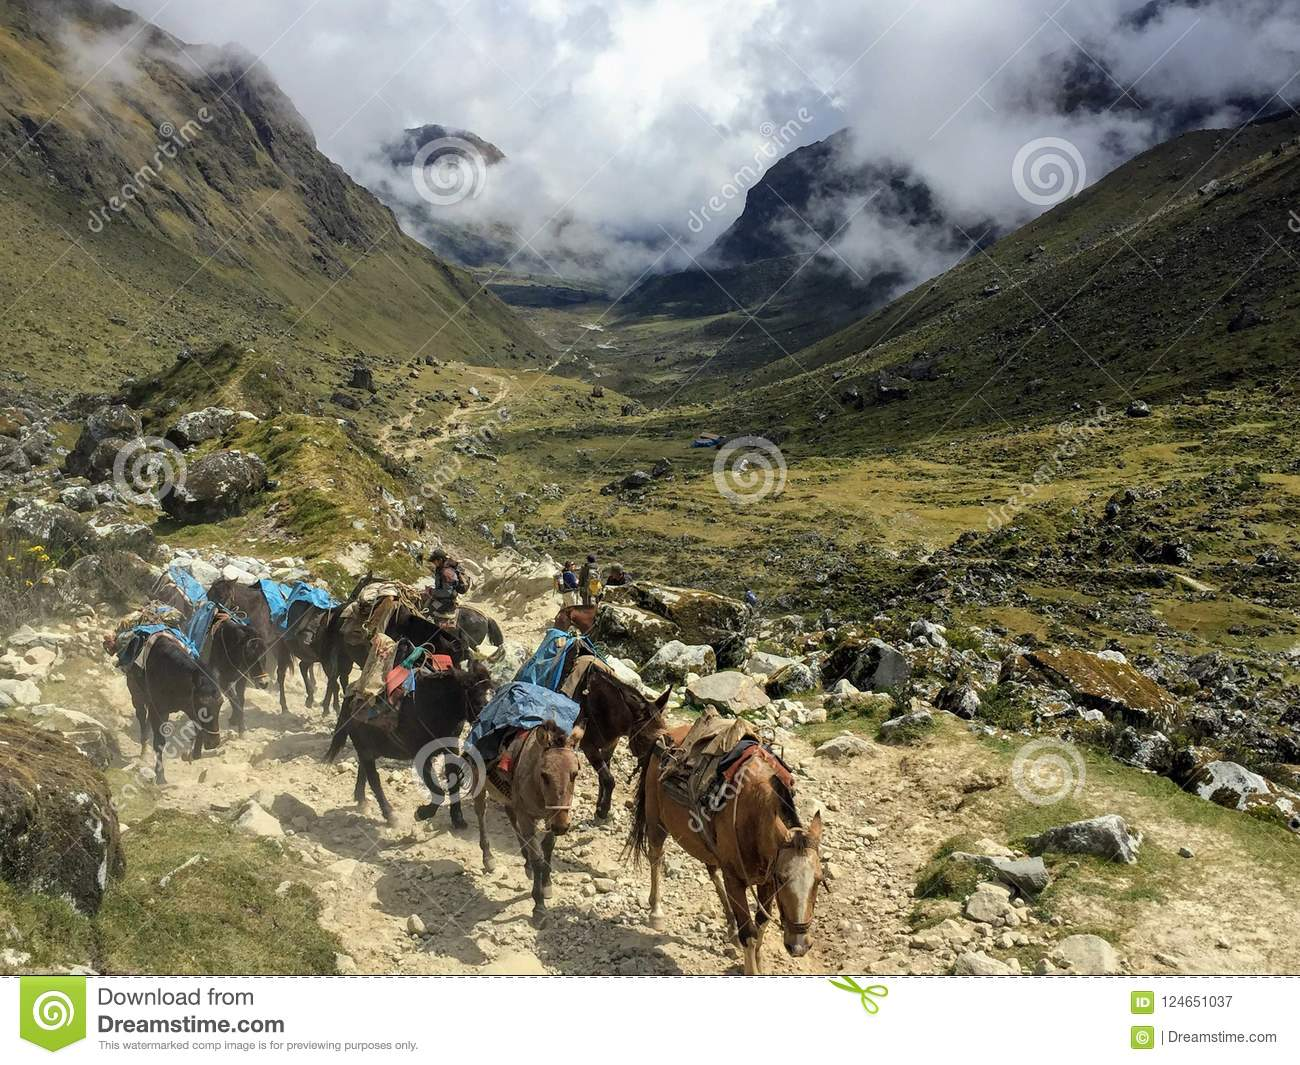 Hiking in the Andes along the Salkantay trail with a group of do